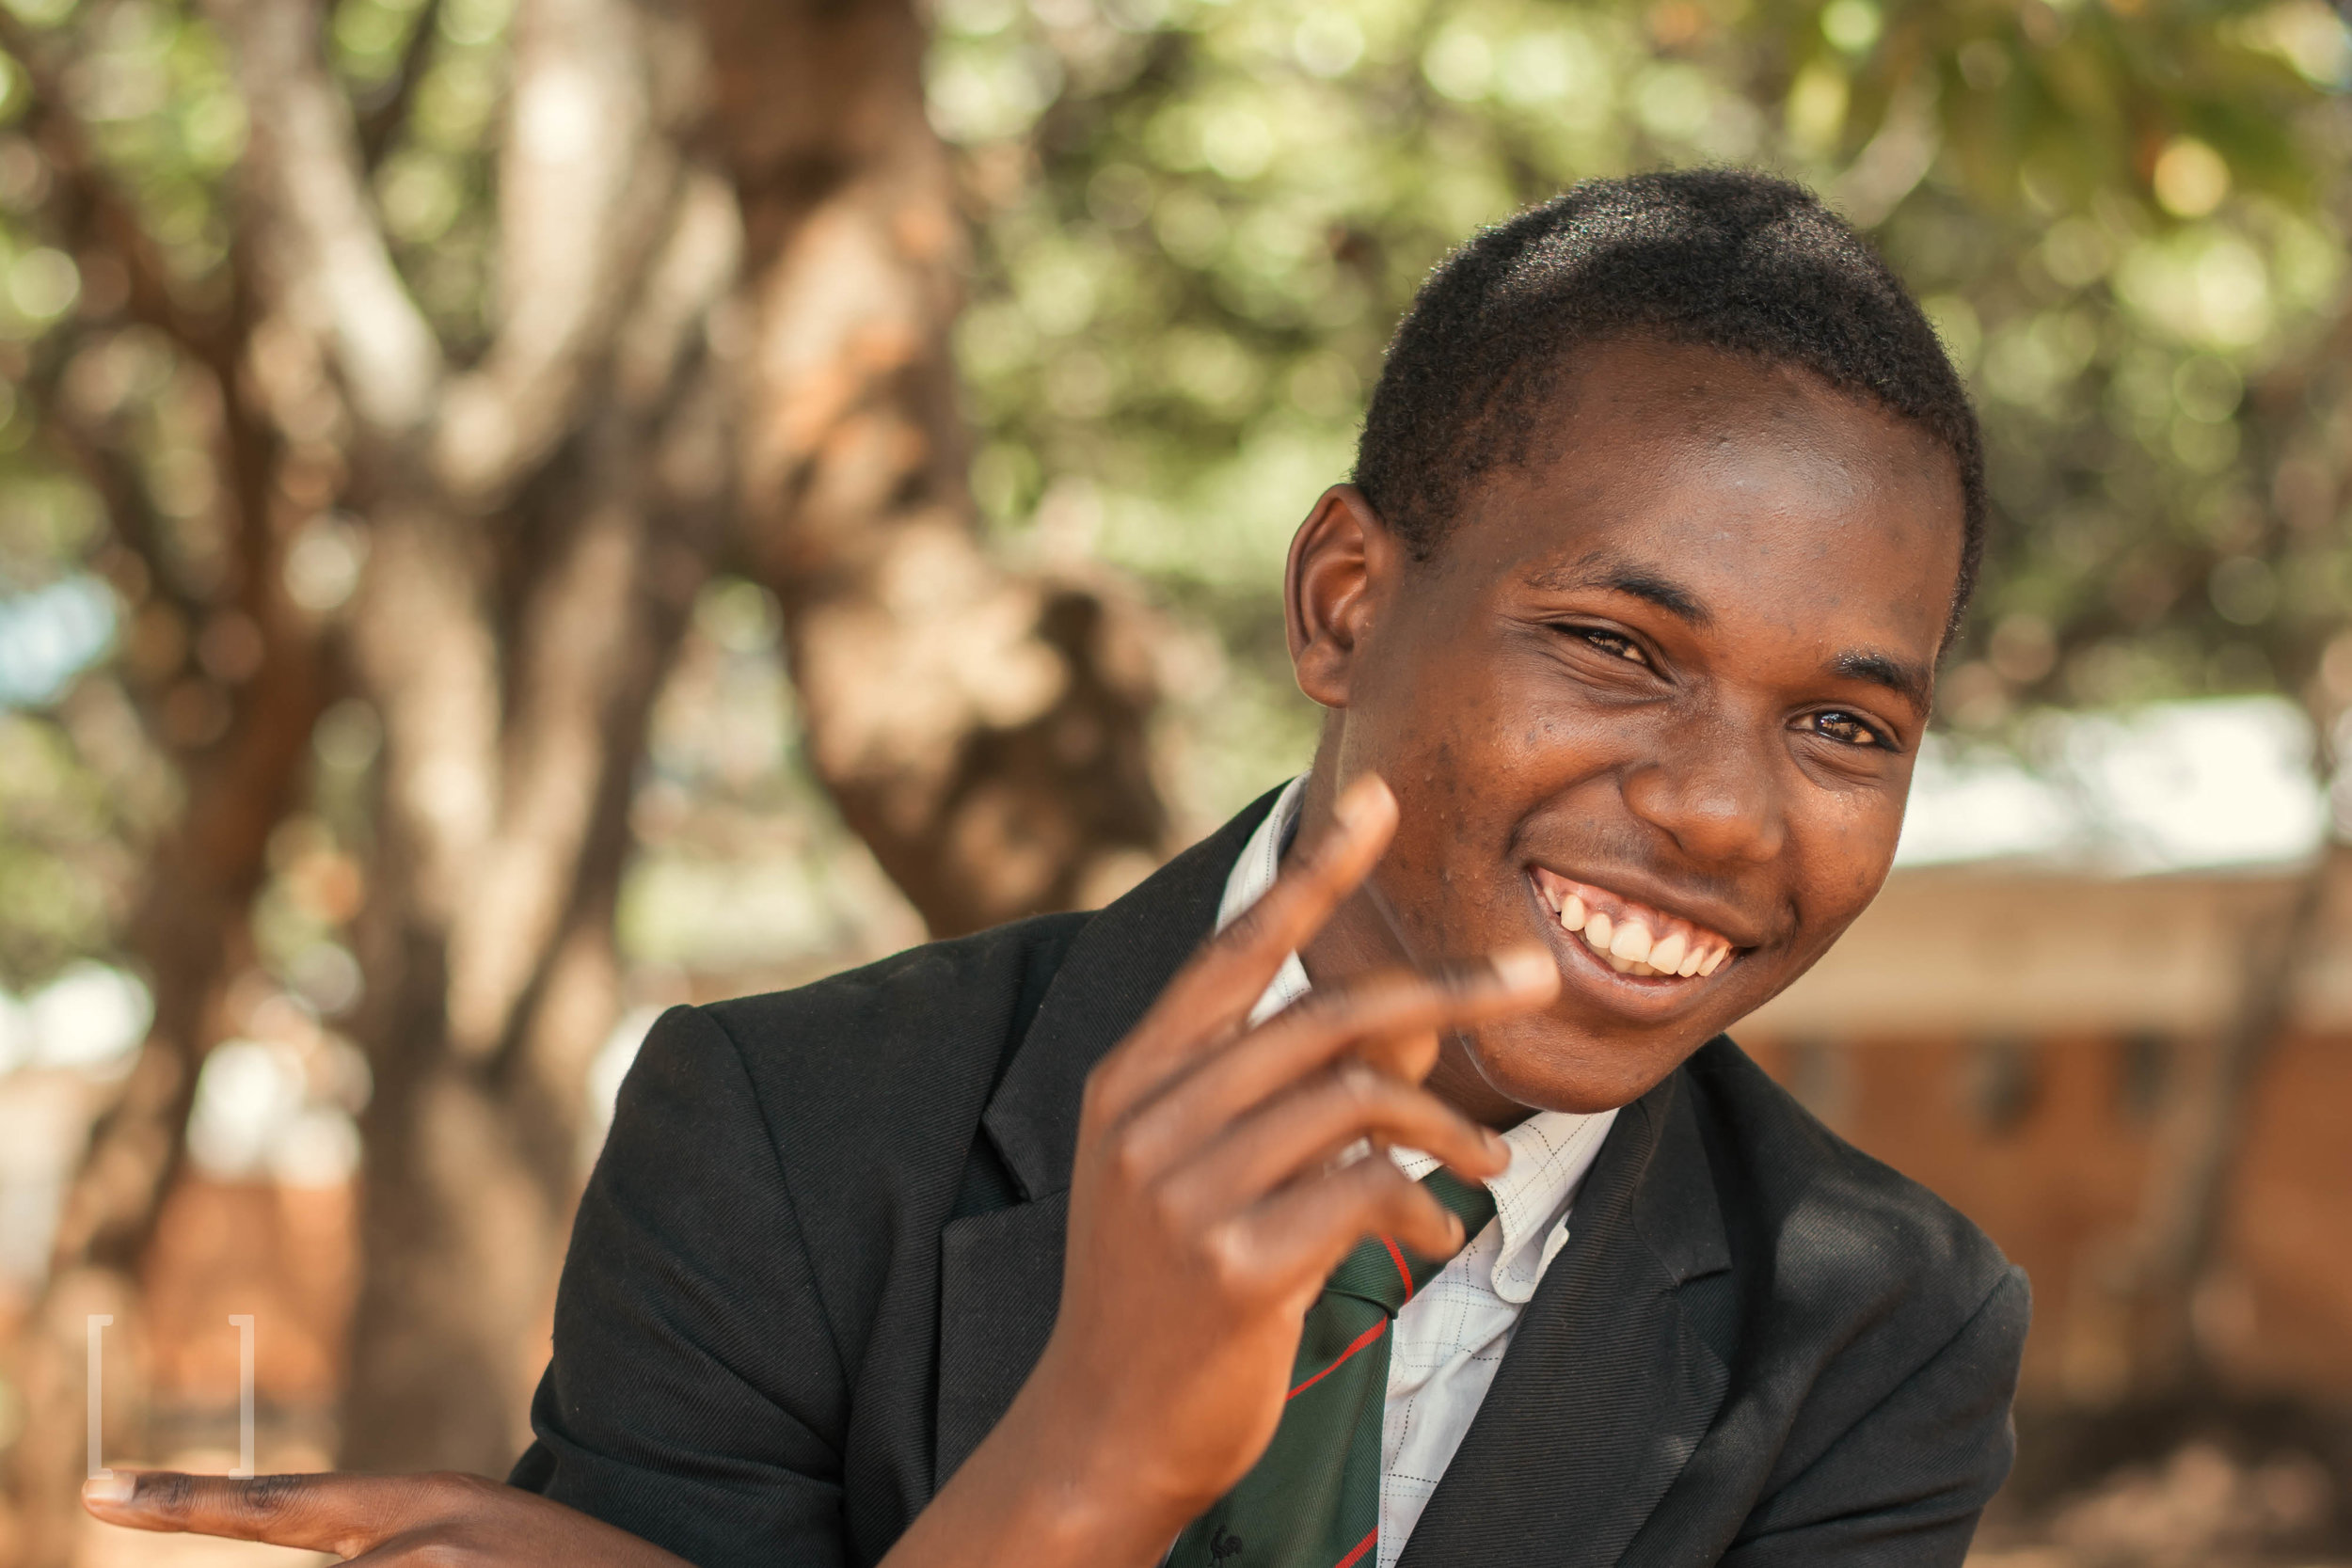 William - William was born on 15 October 2000. He loves to talk - especially with friends at Home of Hope. He'd like to use his voice for good and become a judge. Become Wiliam's sponsor and start a dialouge today!